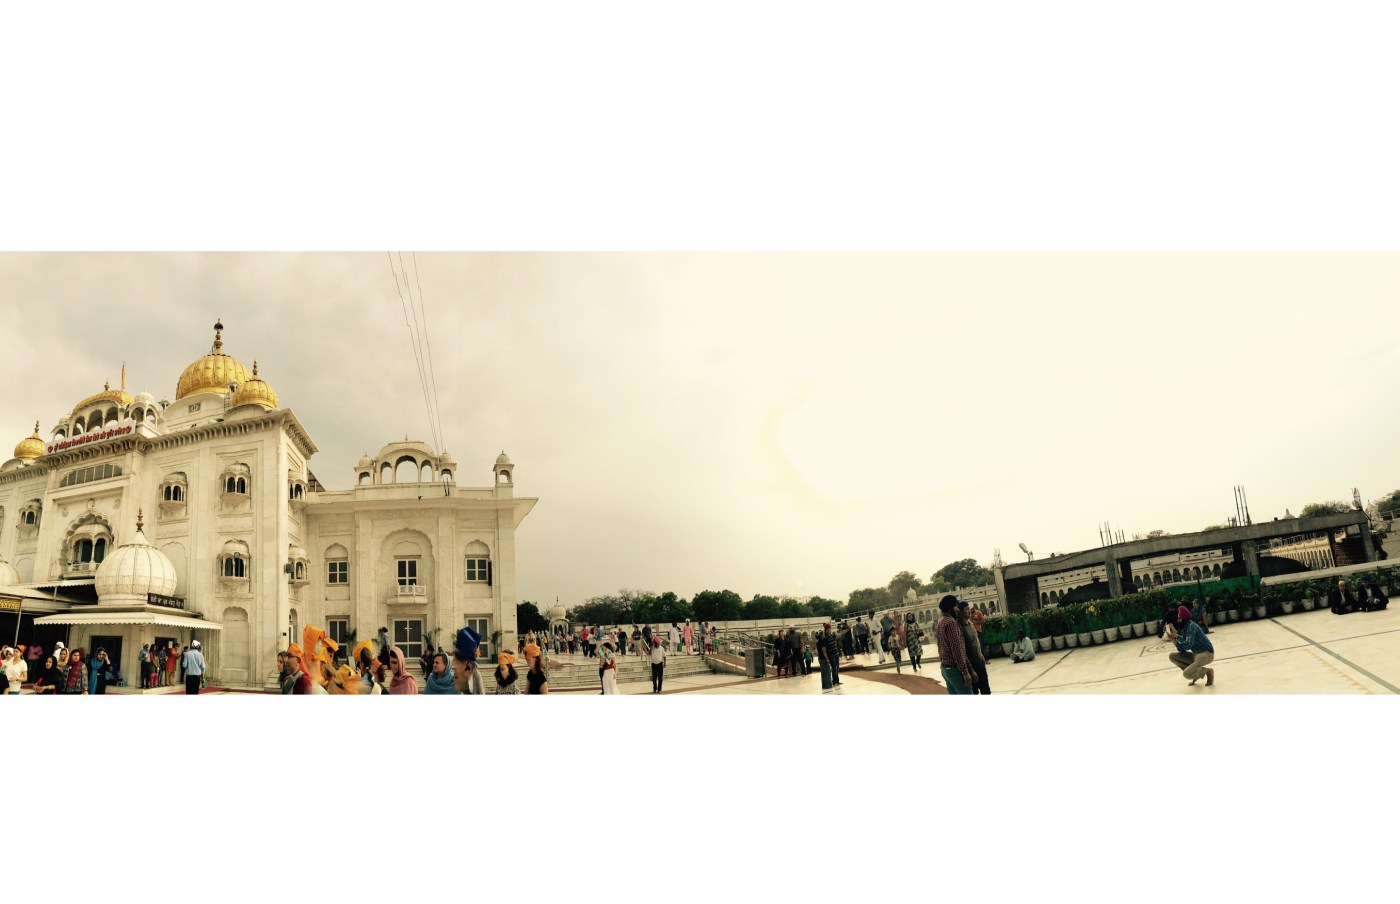 Panaromic view of the Gurudwara Bangla Sahib, Delhi, India || Places to see in Delhi, India || Things to do in Delhi, India || Travelling || Travel